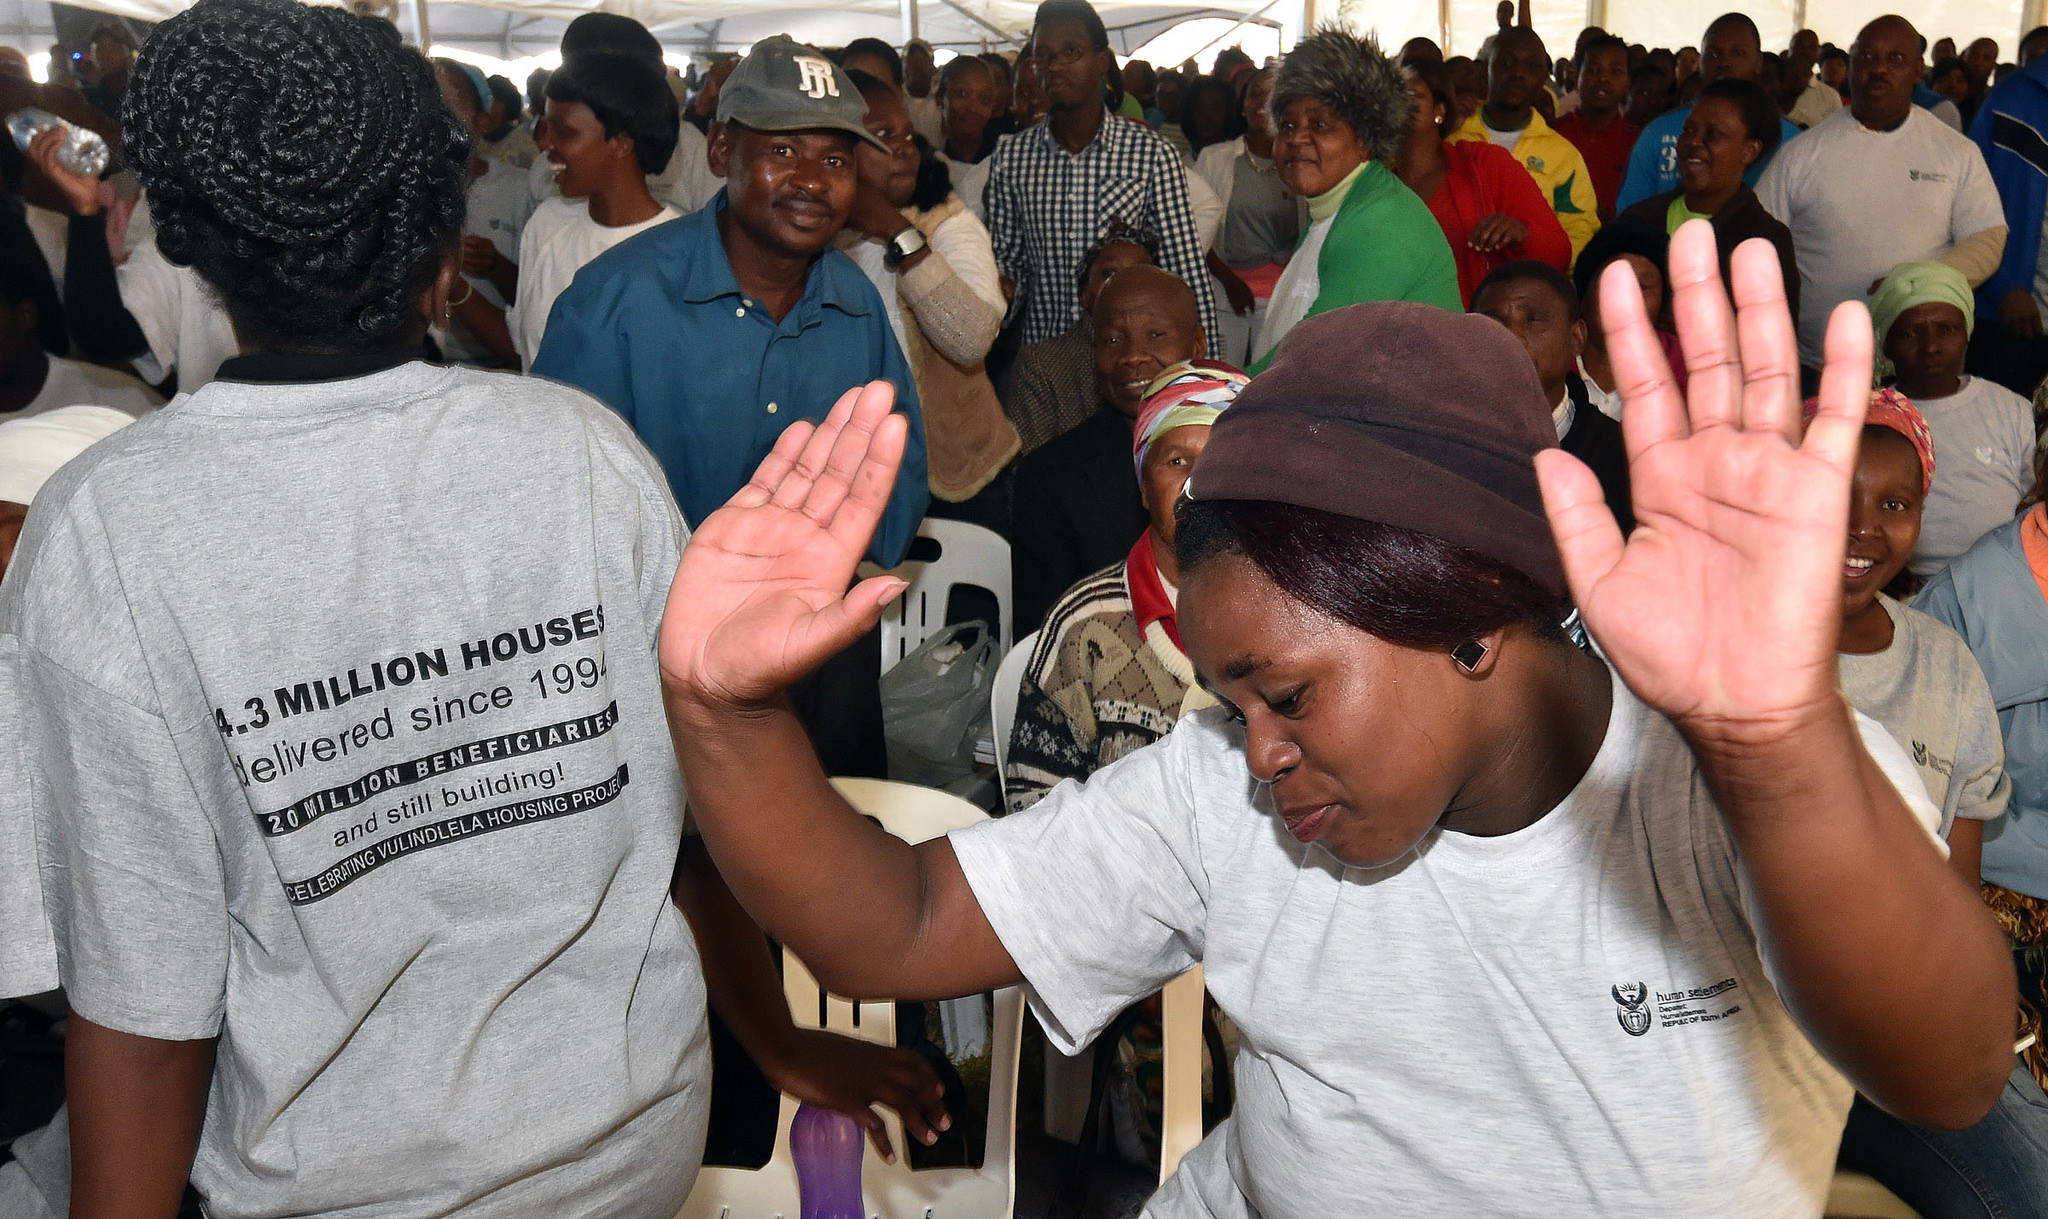 South African woman with hands in the air dancing at community event